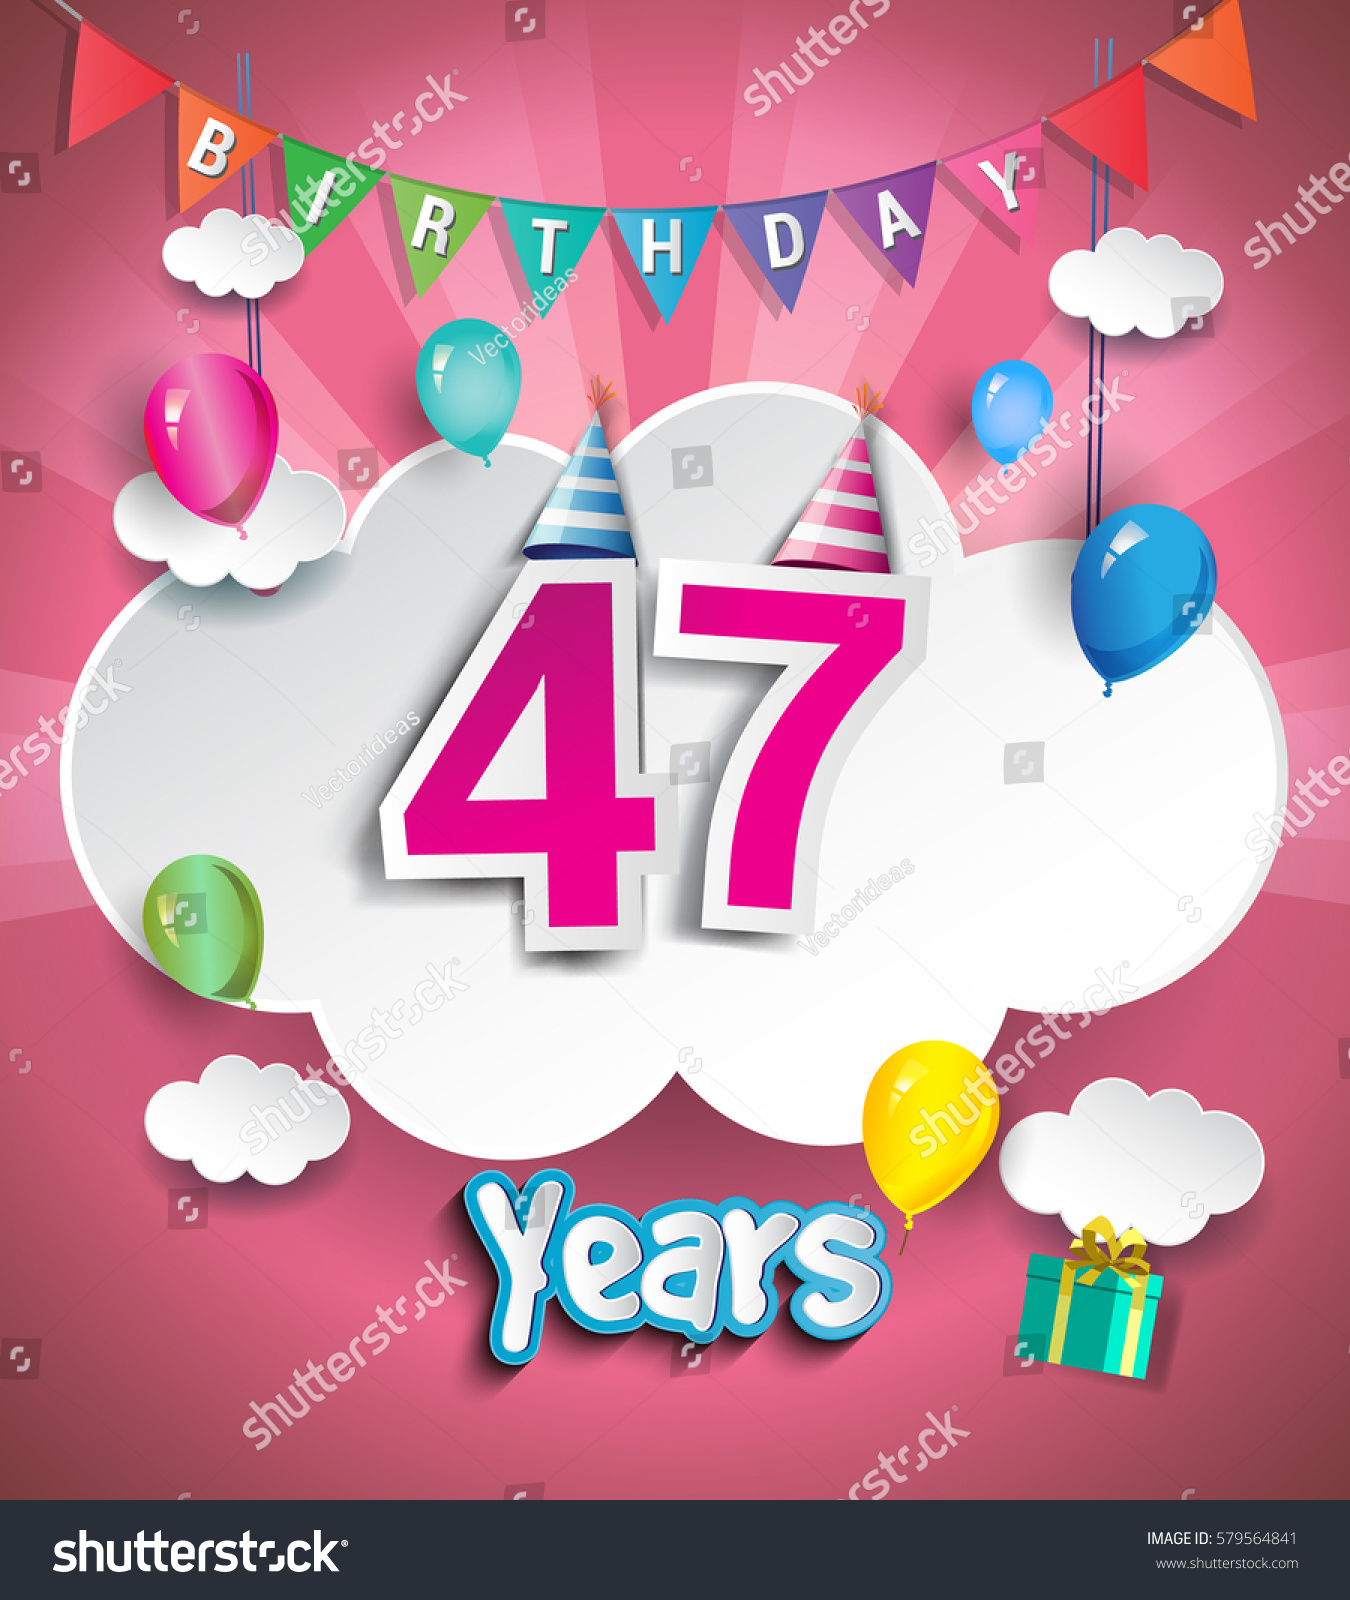 47 Years Birthday Design Greeting Cards Stock Vector 579564841